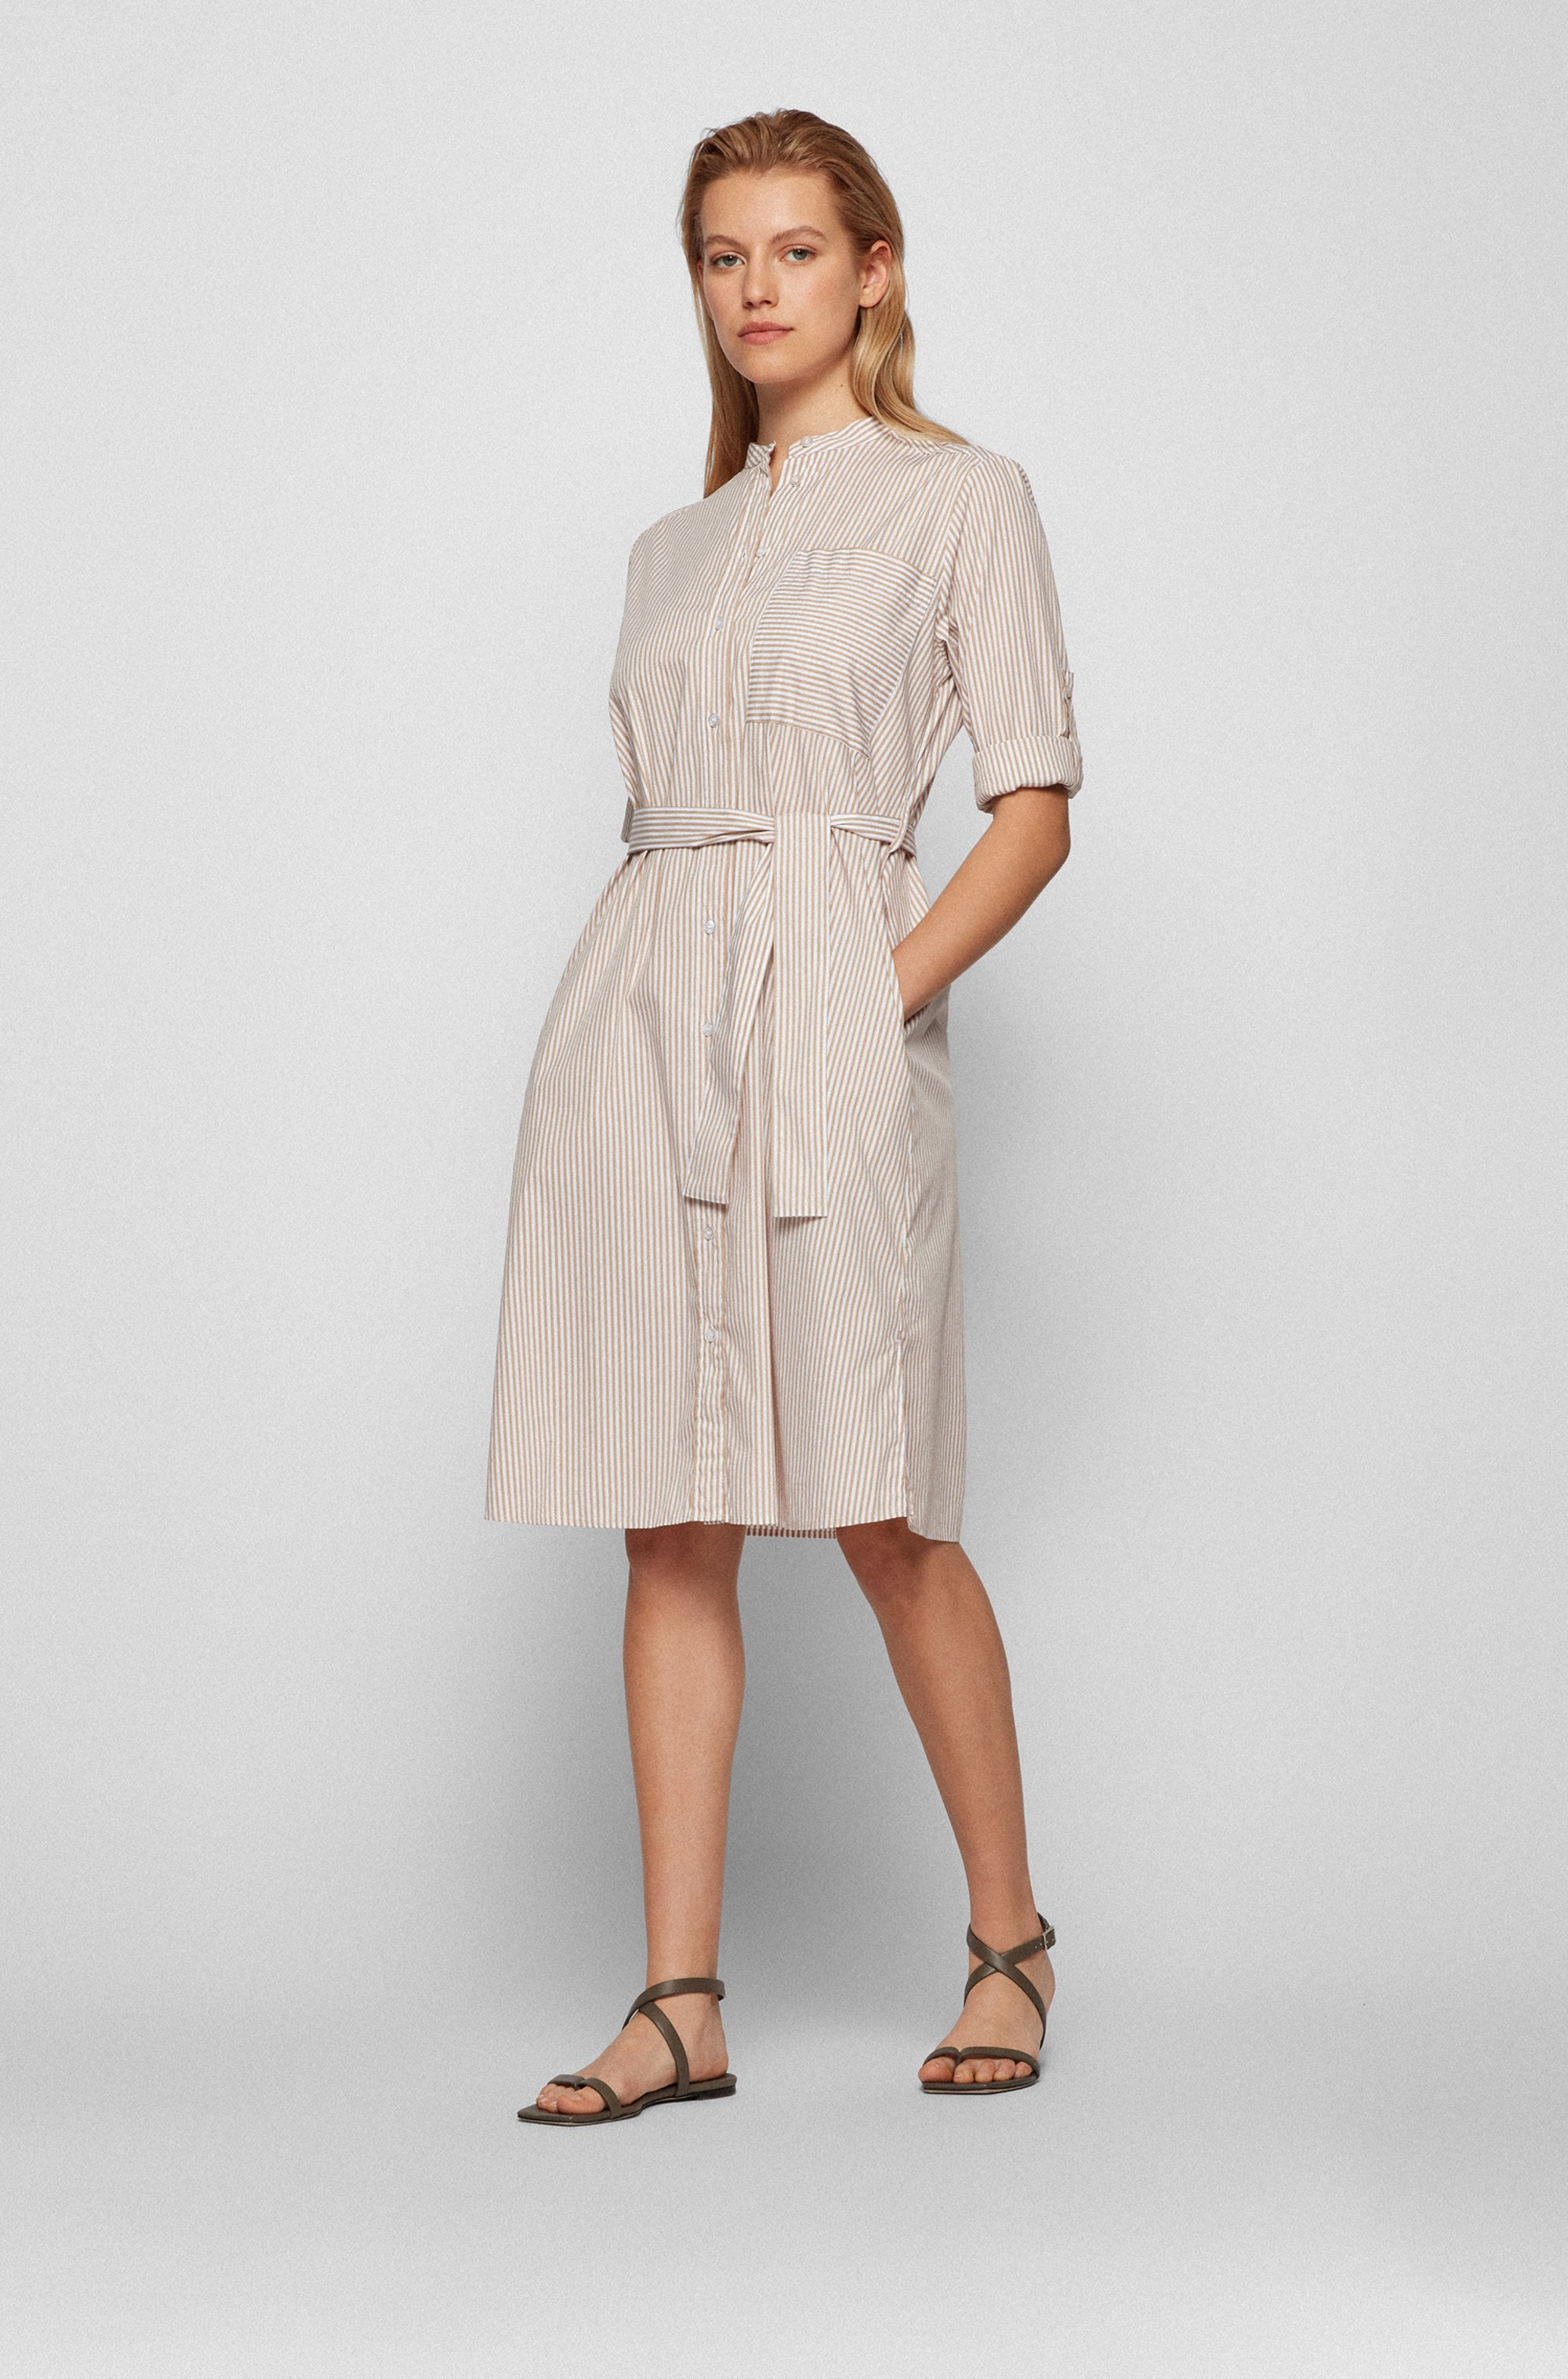 Striped tunic-style dress in cotton-blend fabric